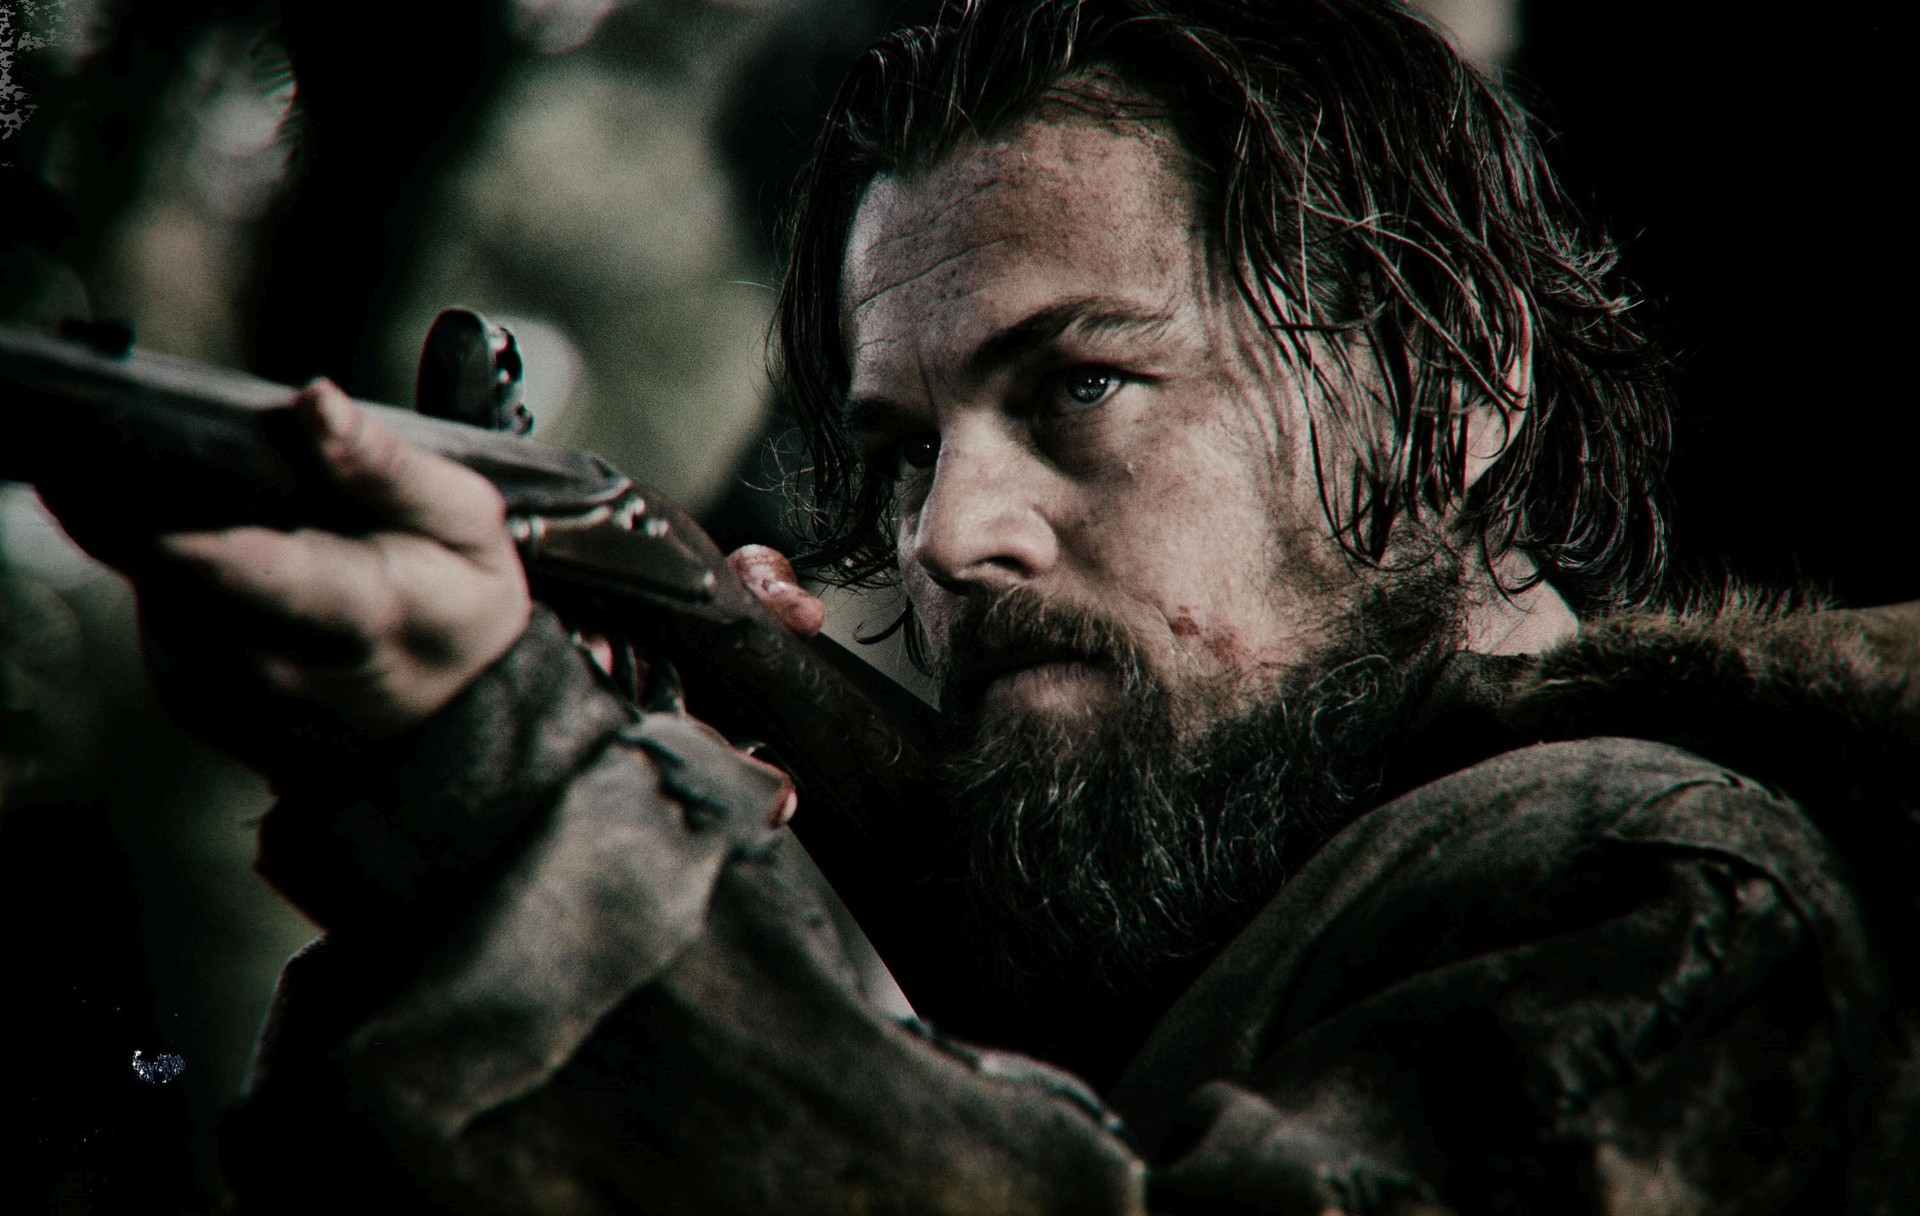 the revenant images the revenant - leonardo dicaprio as hugh glass